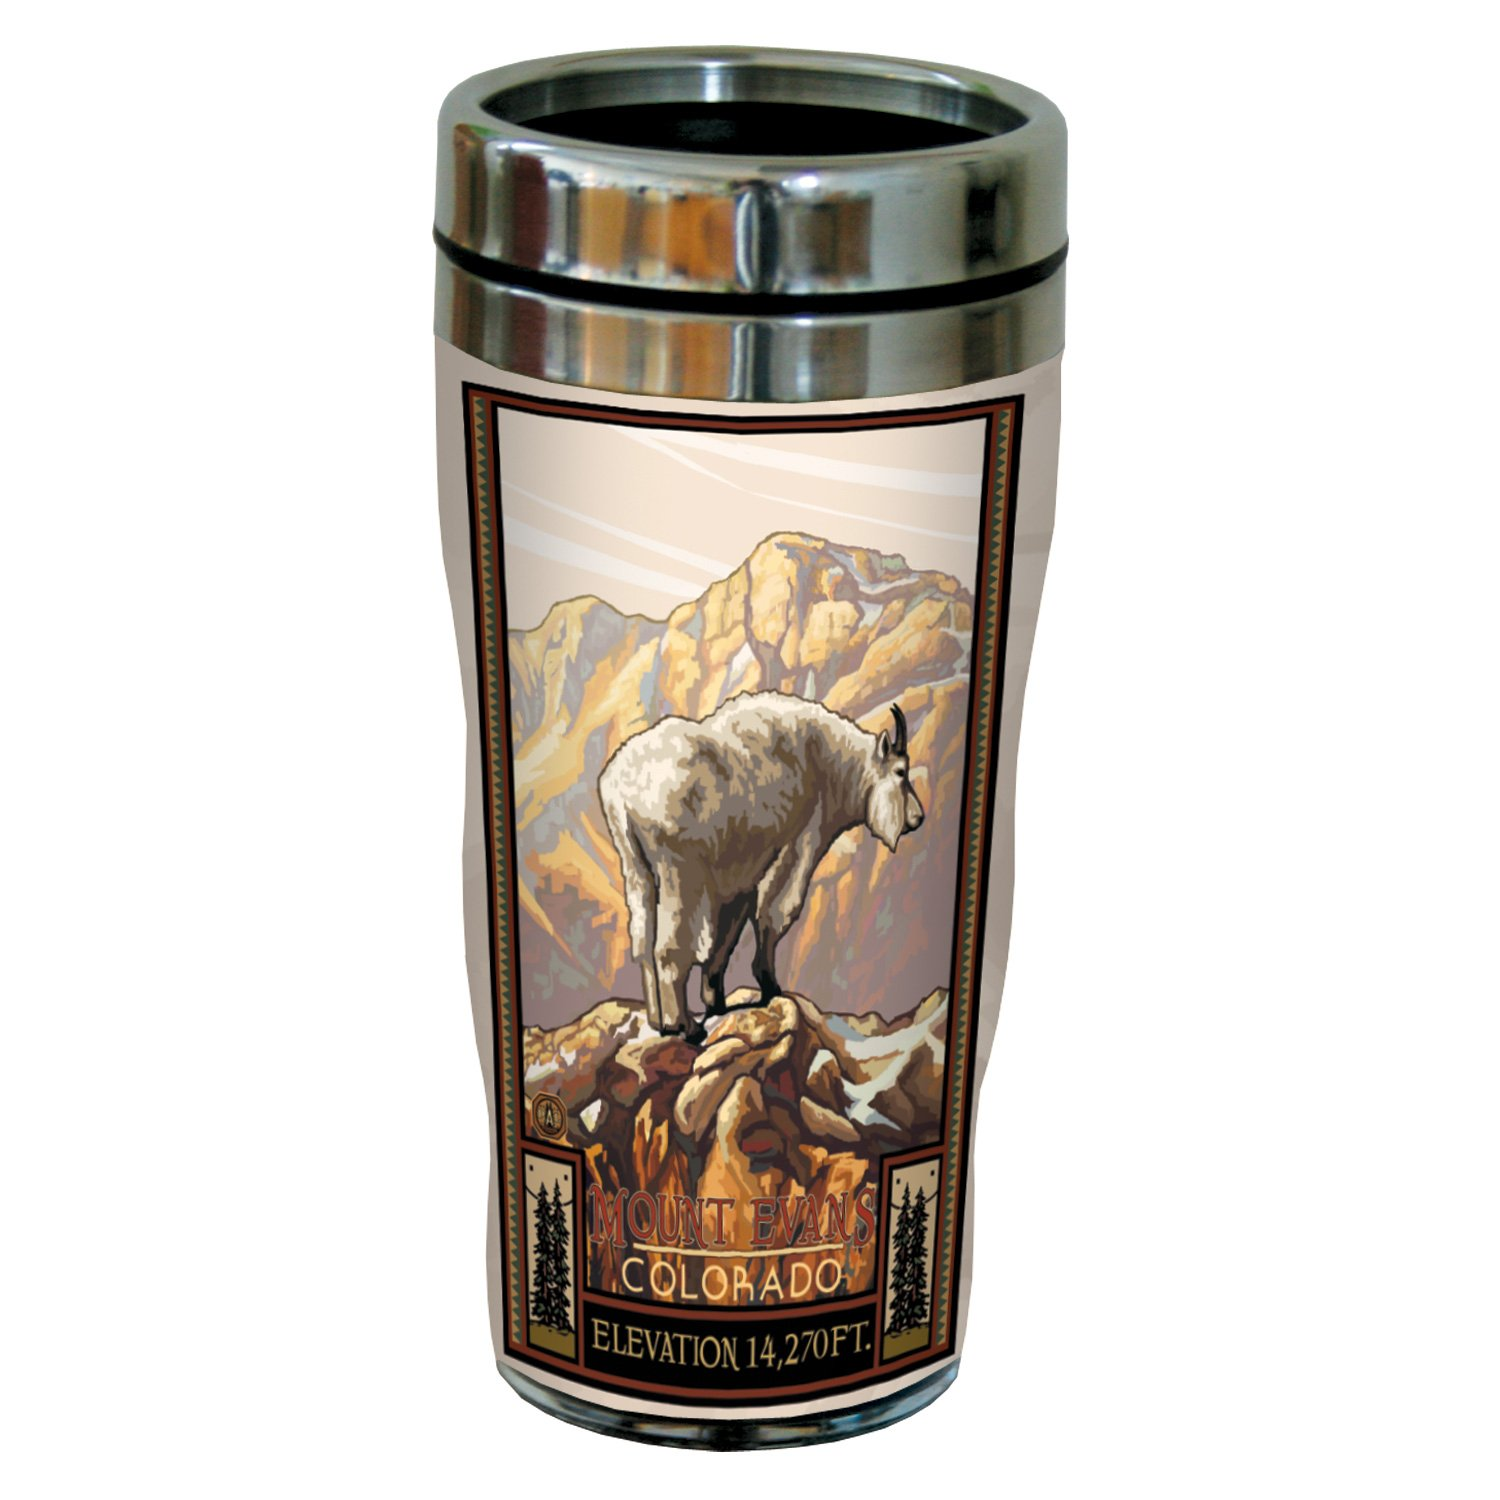 Tree-Free Greetings sg23274 Vintage Colorado Mountain Goat by Paul A. Lanquist Stainless Steel Sip 'N Go Travel Tumbler, 16-Ounce, Multicolored